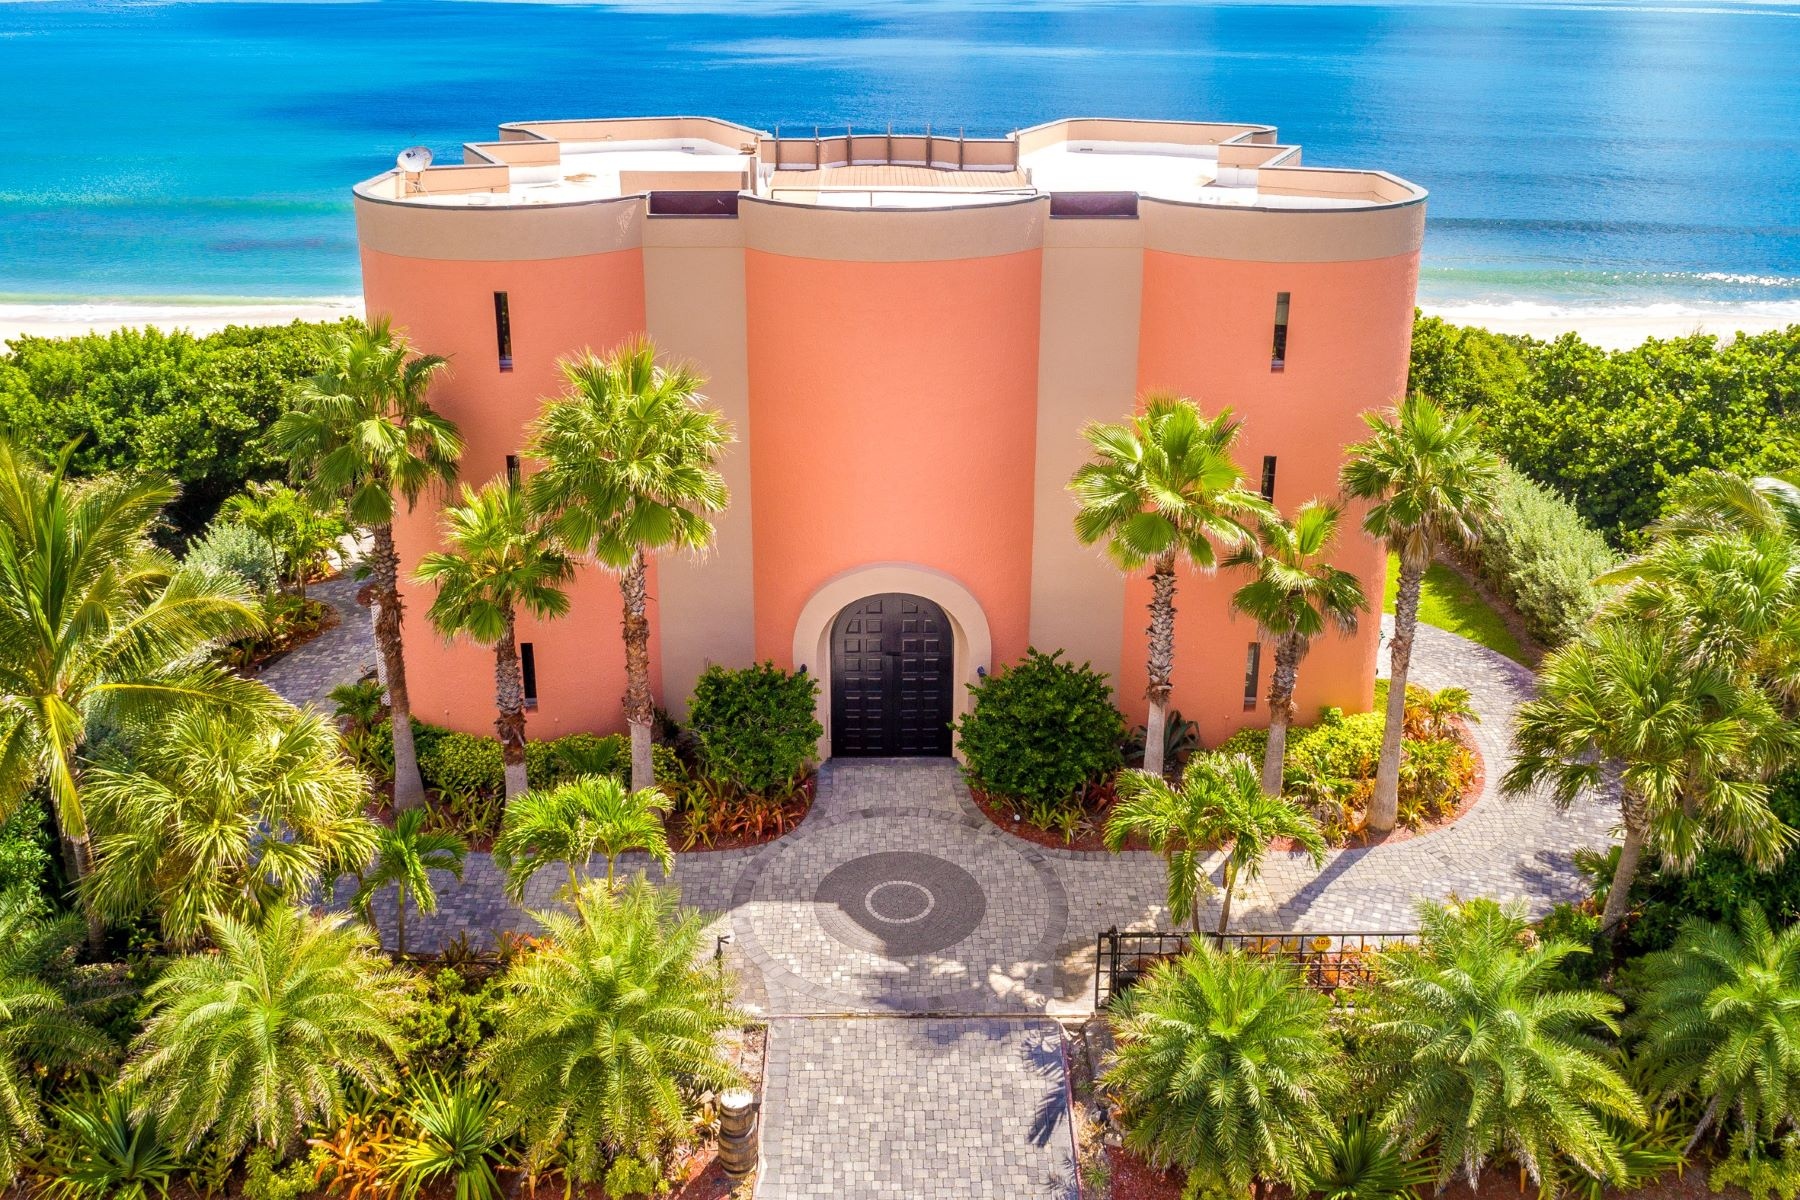 Property for Sale at Iconic and One of a Kind Castle 7525 S Highway A1a Melbourne Beach, Florida 32951 United States